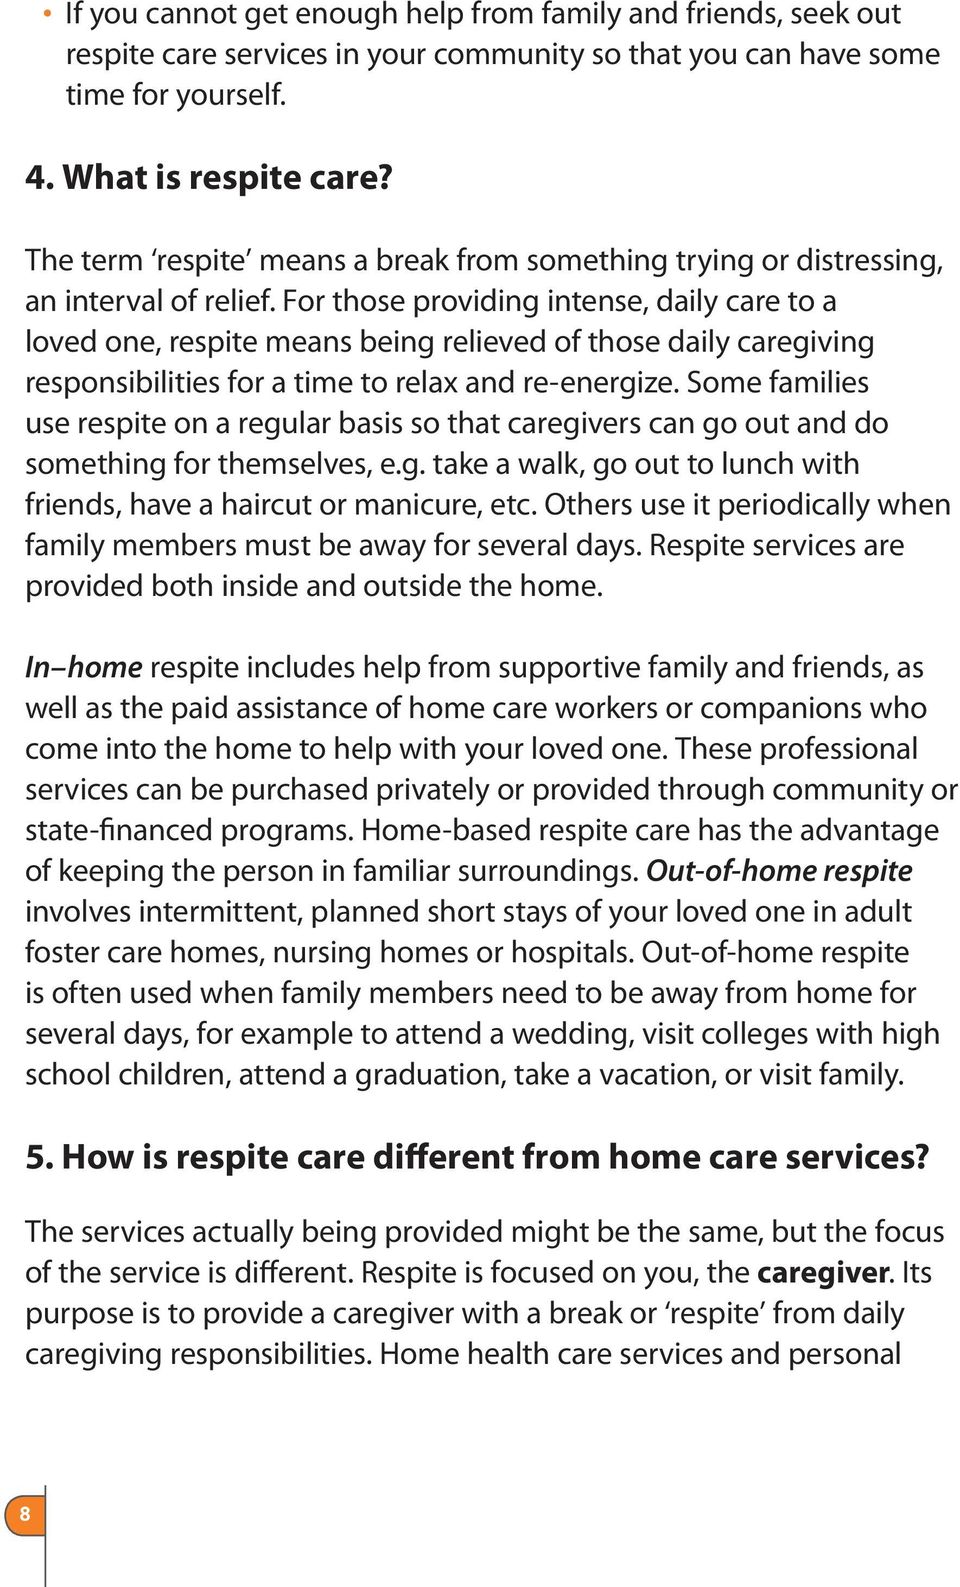 For those providing intense, daily care to a loved one, respite means being relieved of those daily caregiving responsibilities for a time to relax and re-energize.